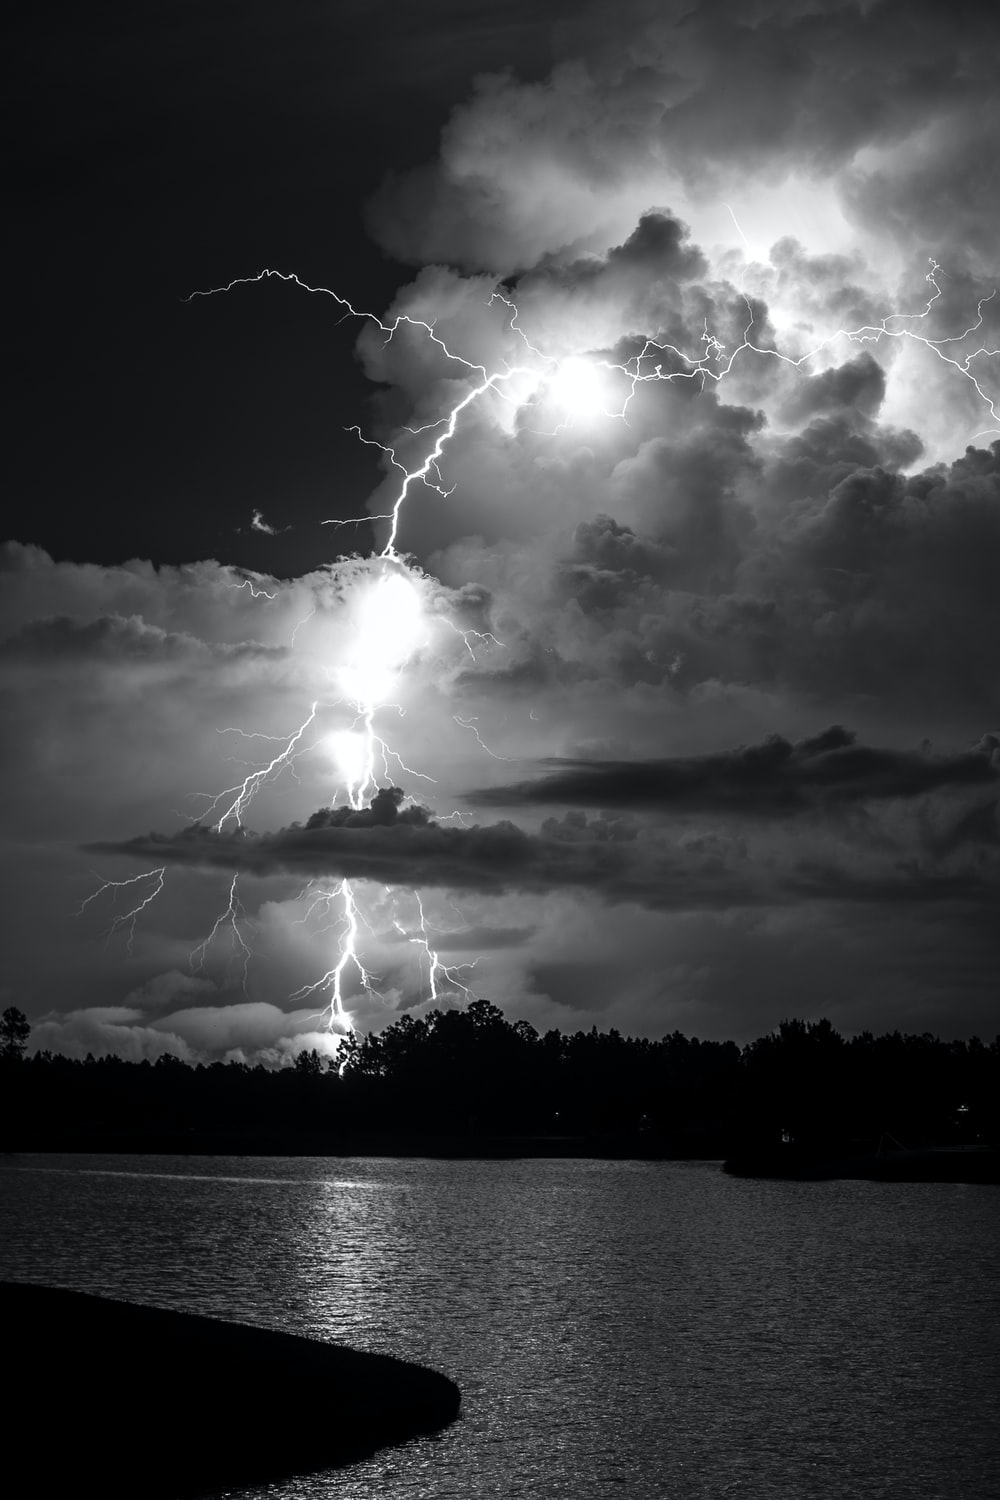 grayscale photo of lightning over body of water